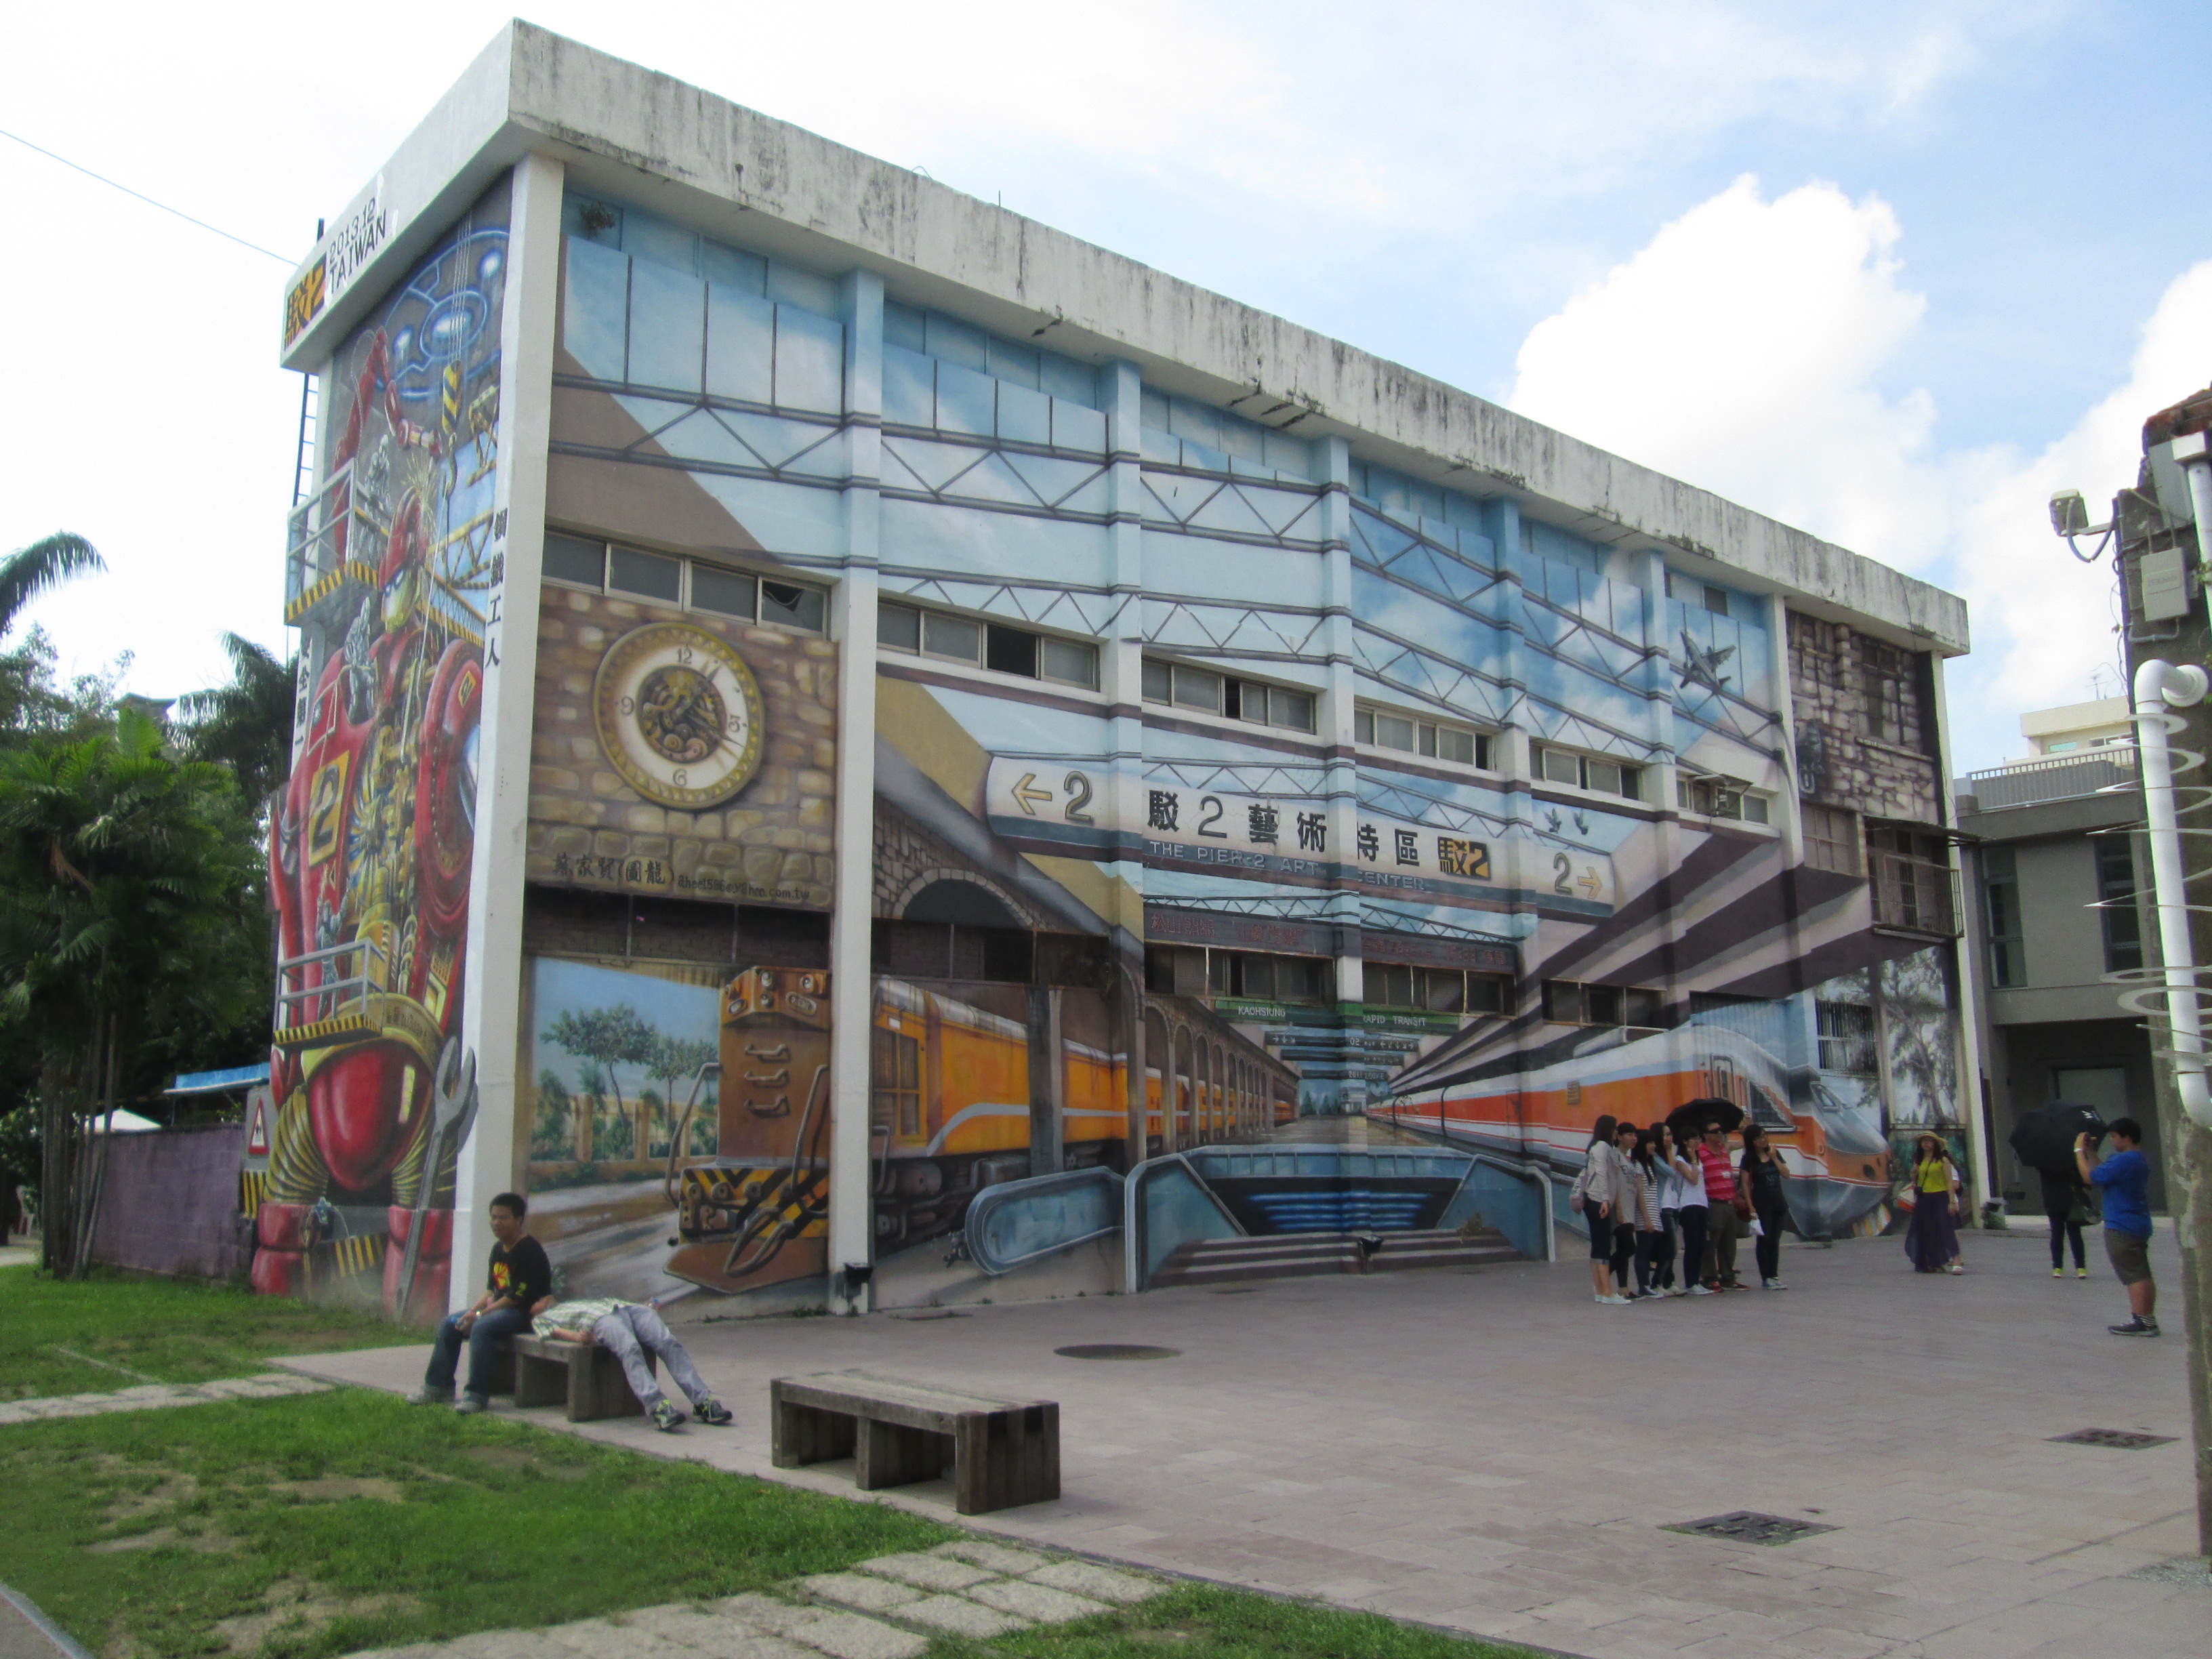 A mural covering an entire building at Pier-2 Art Center, Kaohsiung